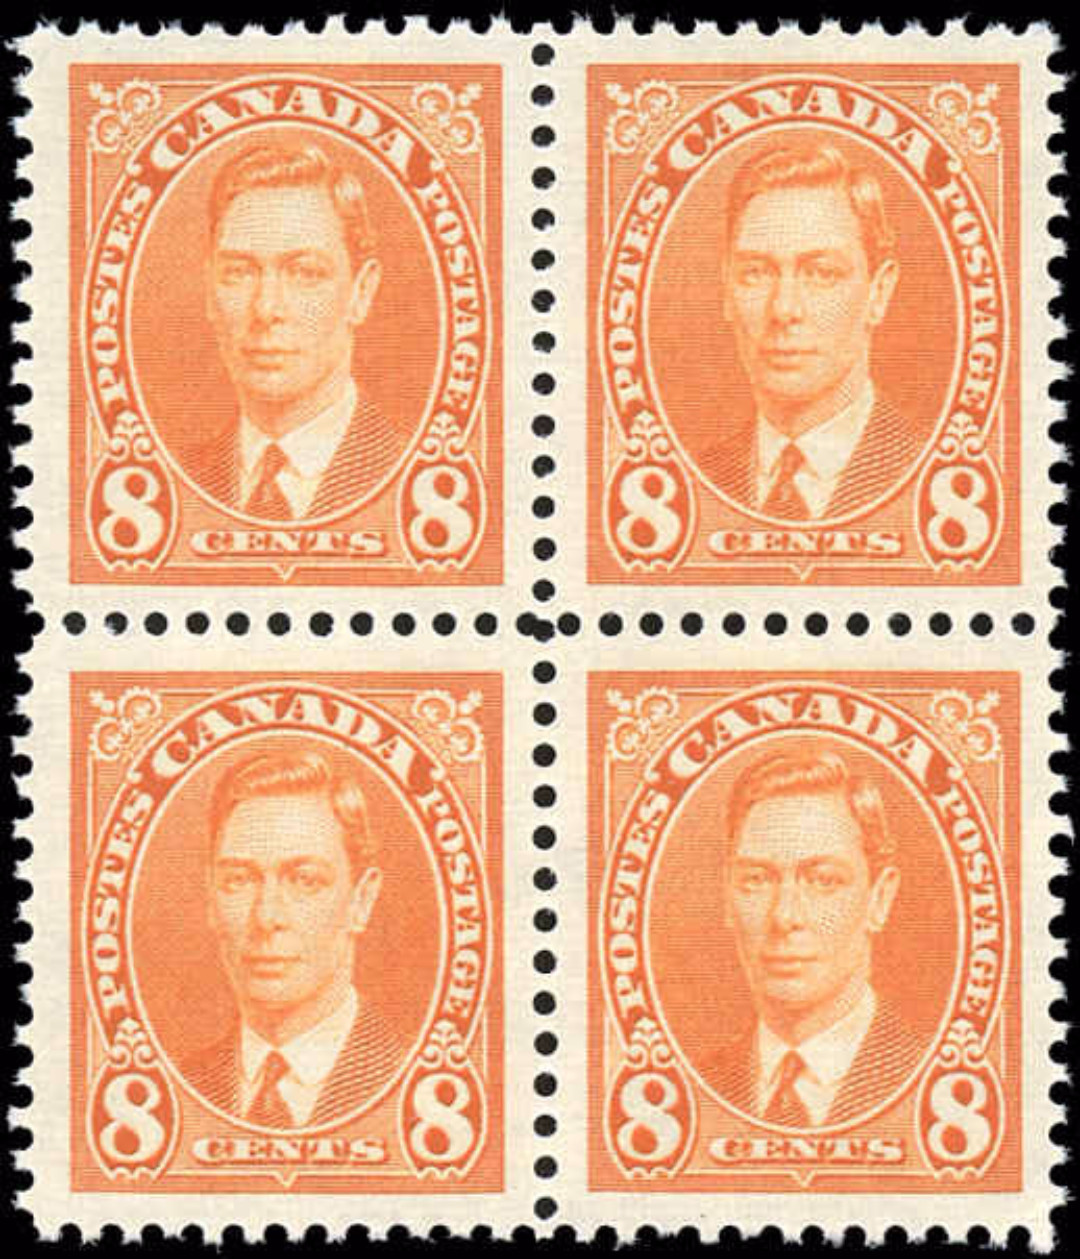 Canada #236, Mufti Issue, VF, M